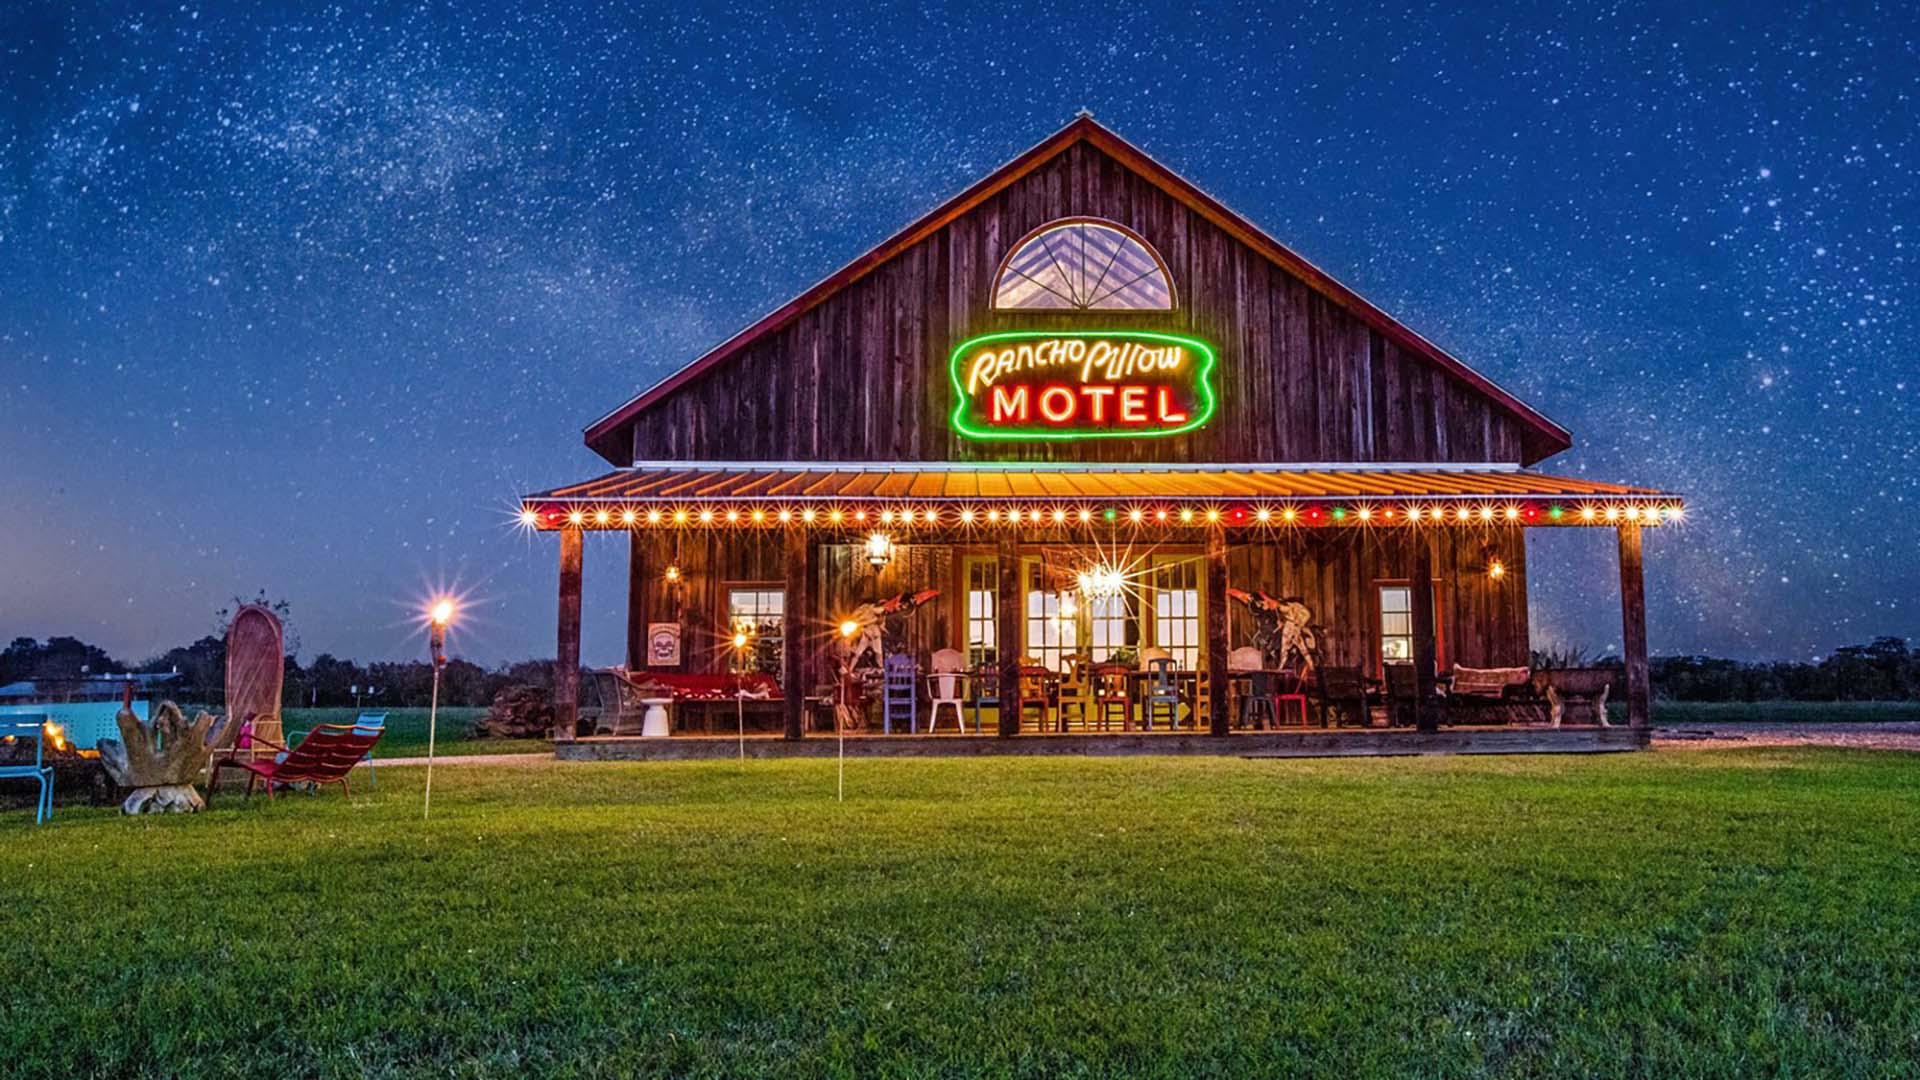 Image of Ranch Pillow Motel